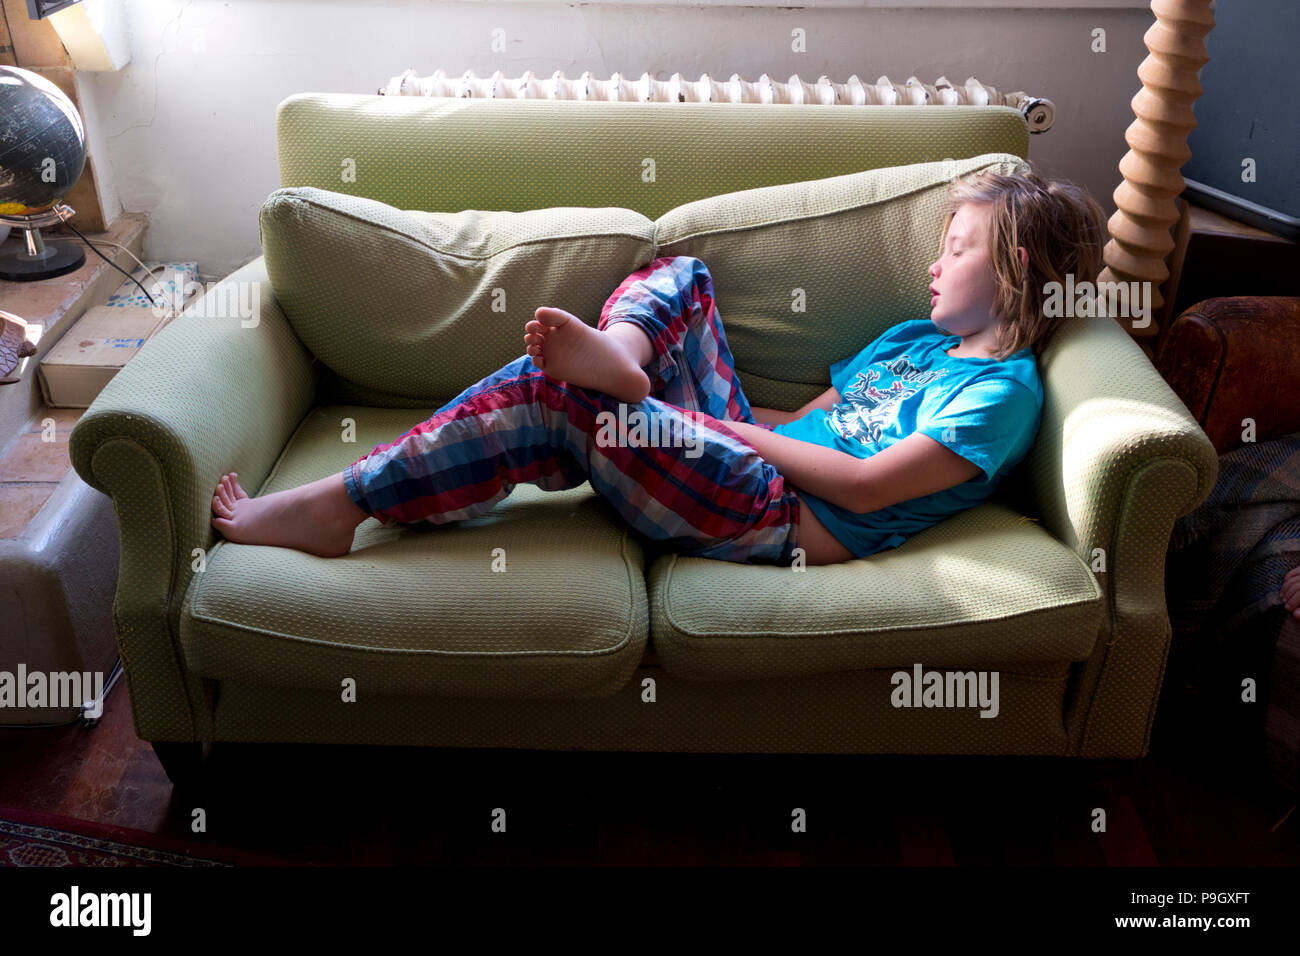 an eleven year old boy with long hair lies asleep in his pyjamas on a sofa in his home - Stock Image